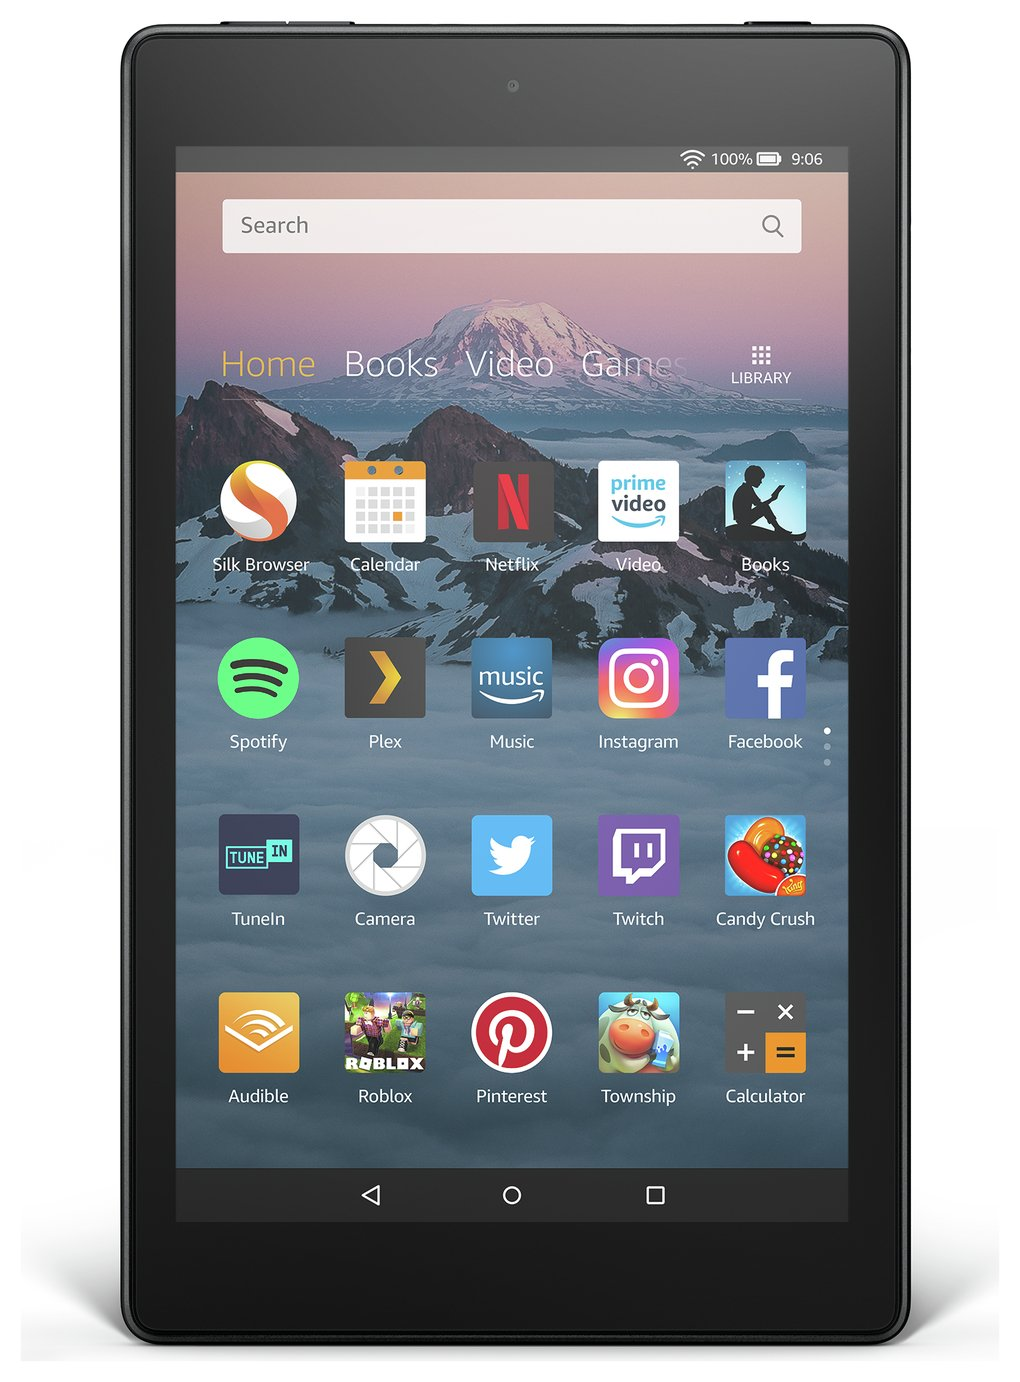 Amazon Fire HD 8 Alexa 8 Inch 16GB Tablet - Black from Amazon